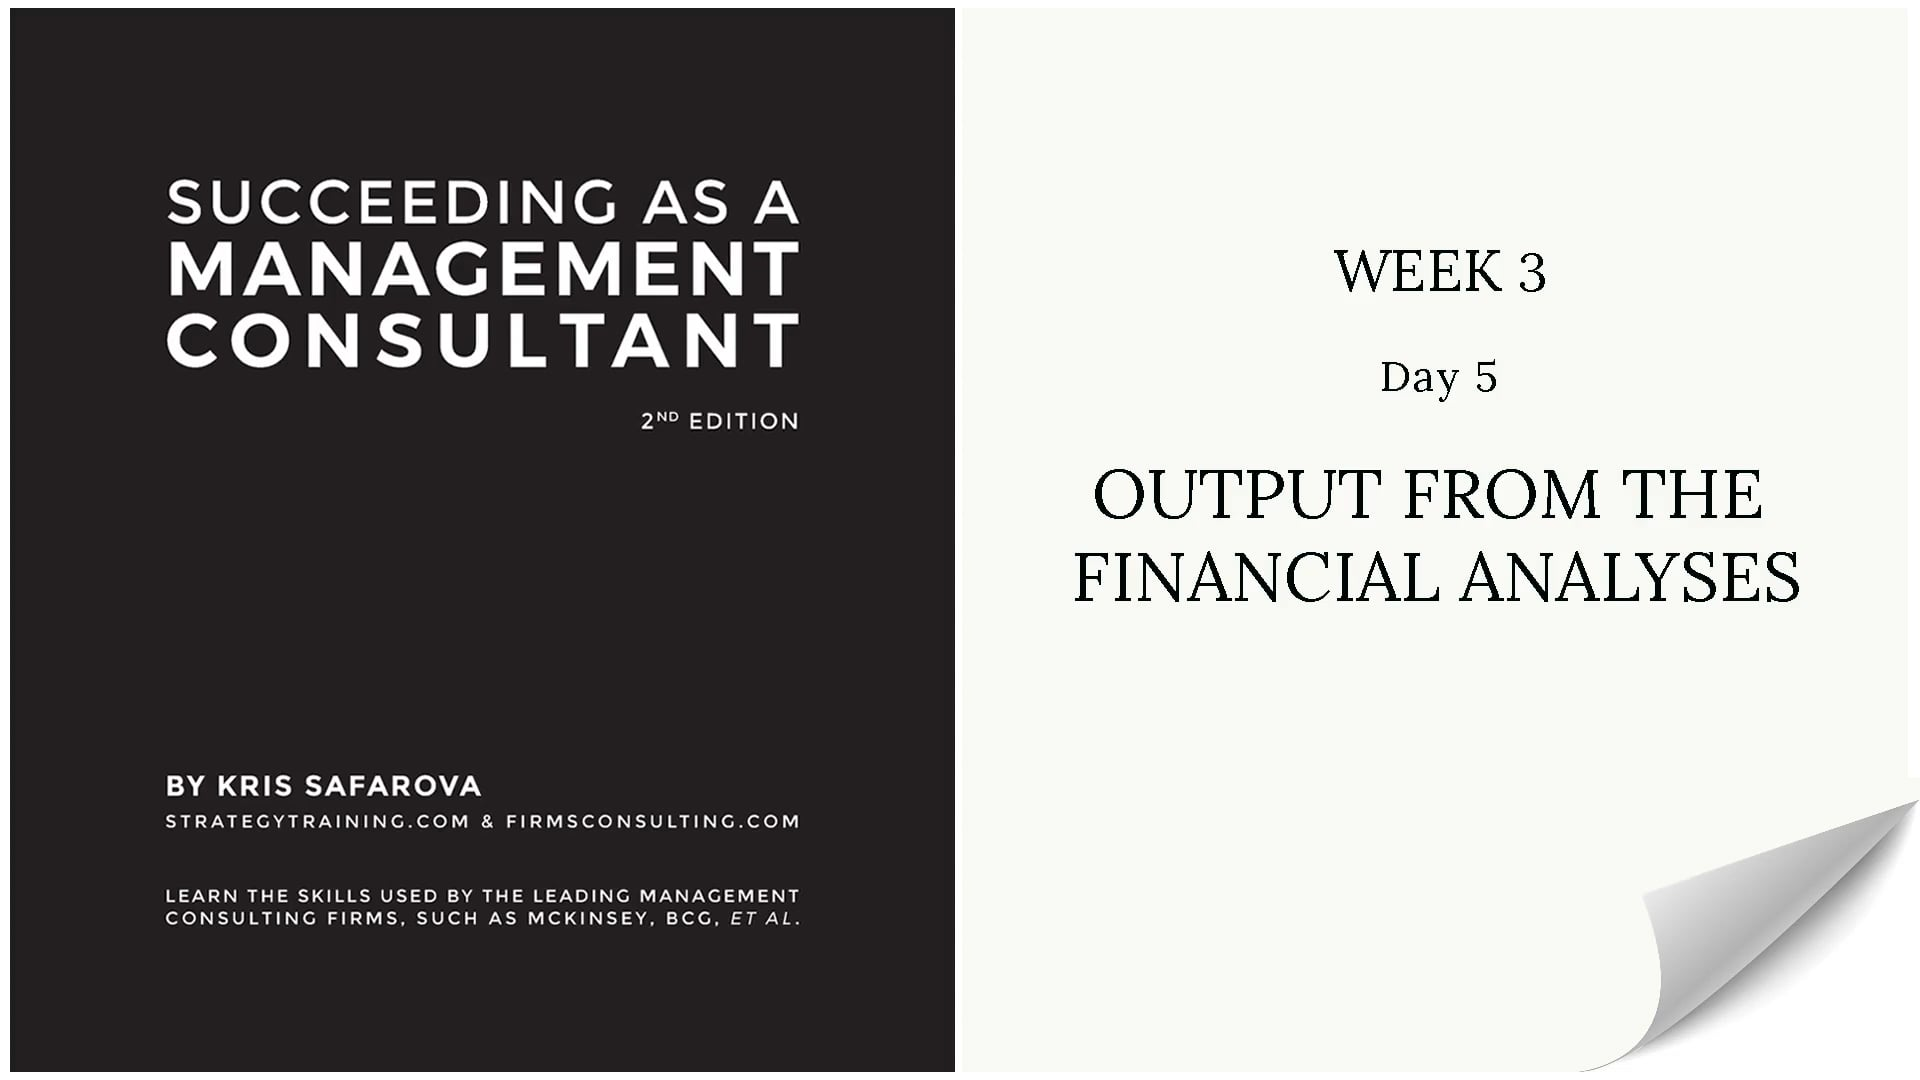 025 SAAMC Week 3 - Day 5 Output From ...